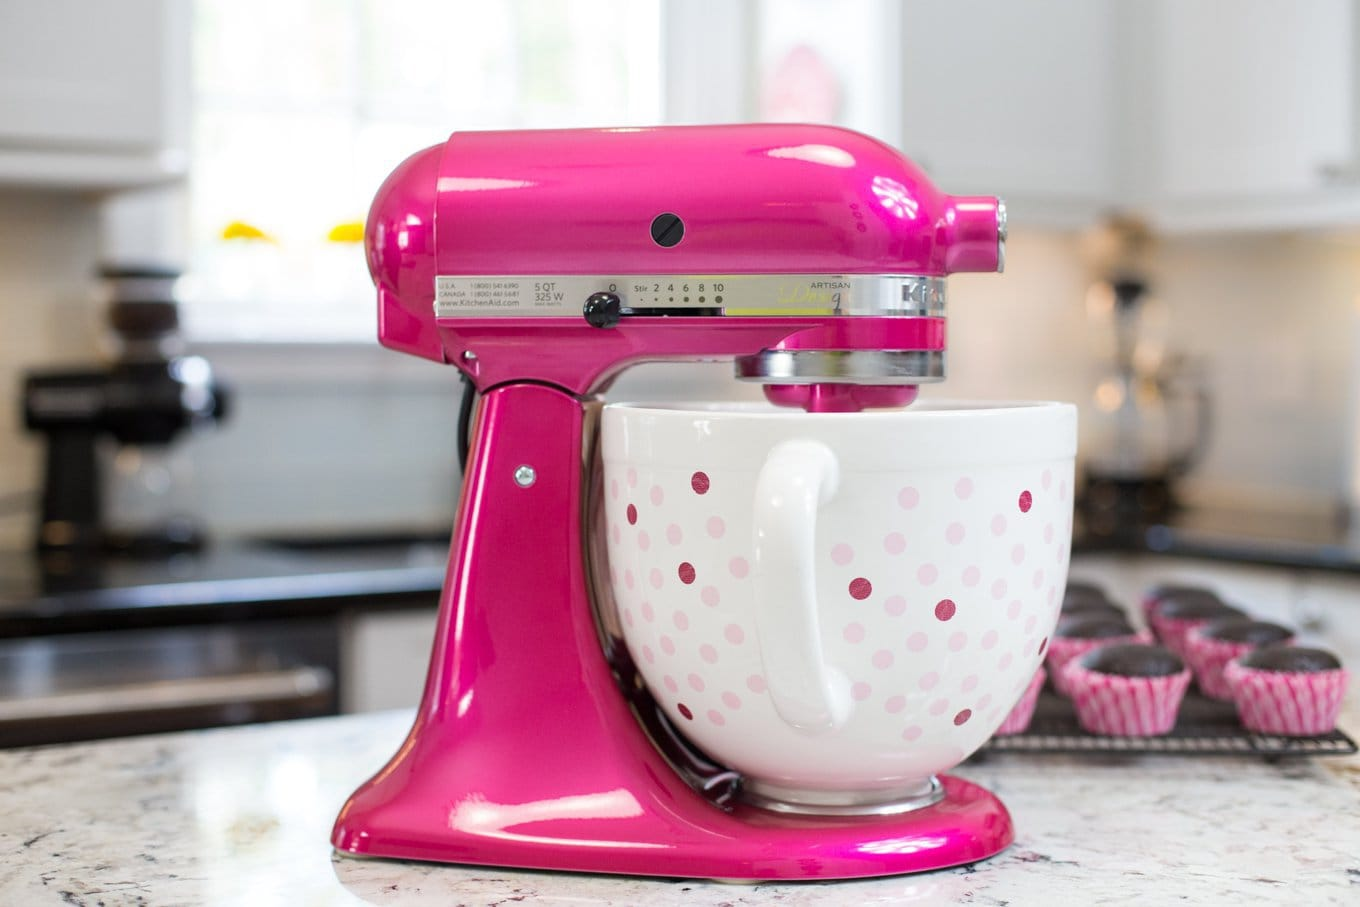 KitchenAid Raspberry Ice Artisan Mixer with Polka Dot Bowl - created to help promote awareness and help fund the fight against breast cancer through KitchenAid and the Susan Komen Foundation. thecafesucrefarine.com